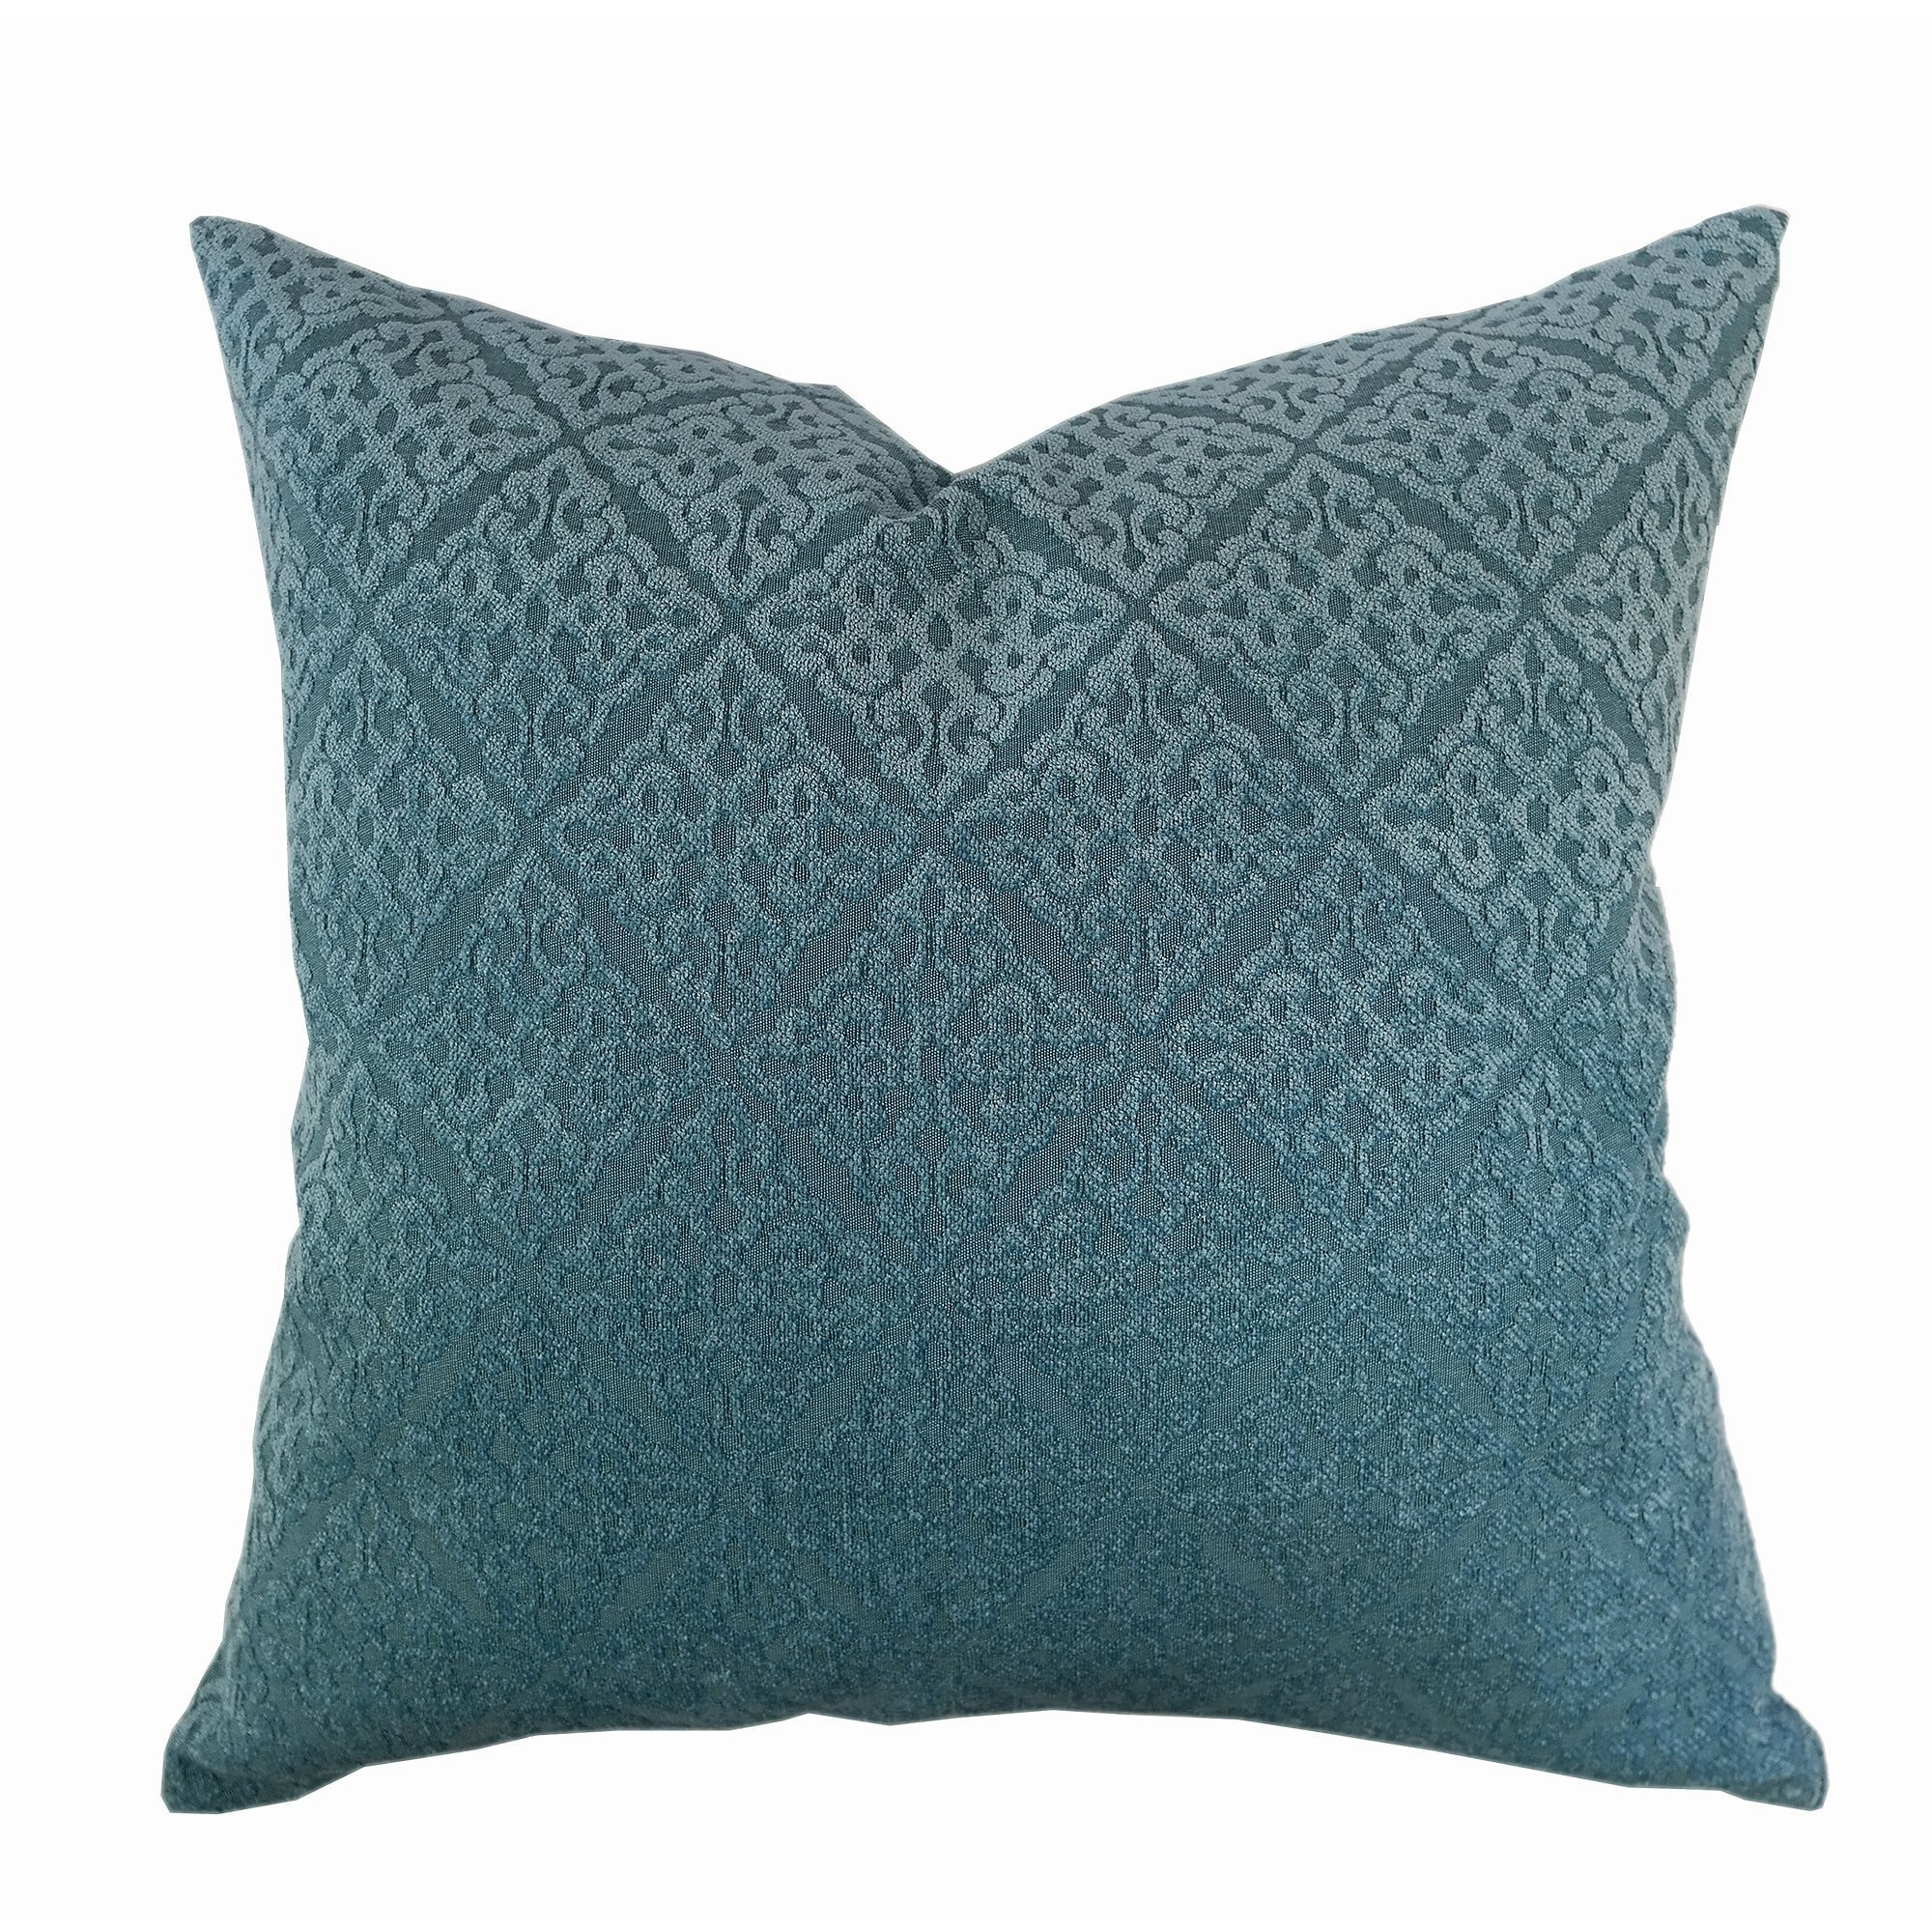 Home Accent Pillows Chenille Jacquard Throw Pillow Spa Blue, Turquoise